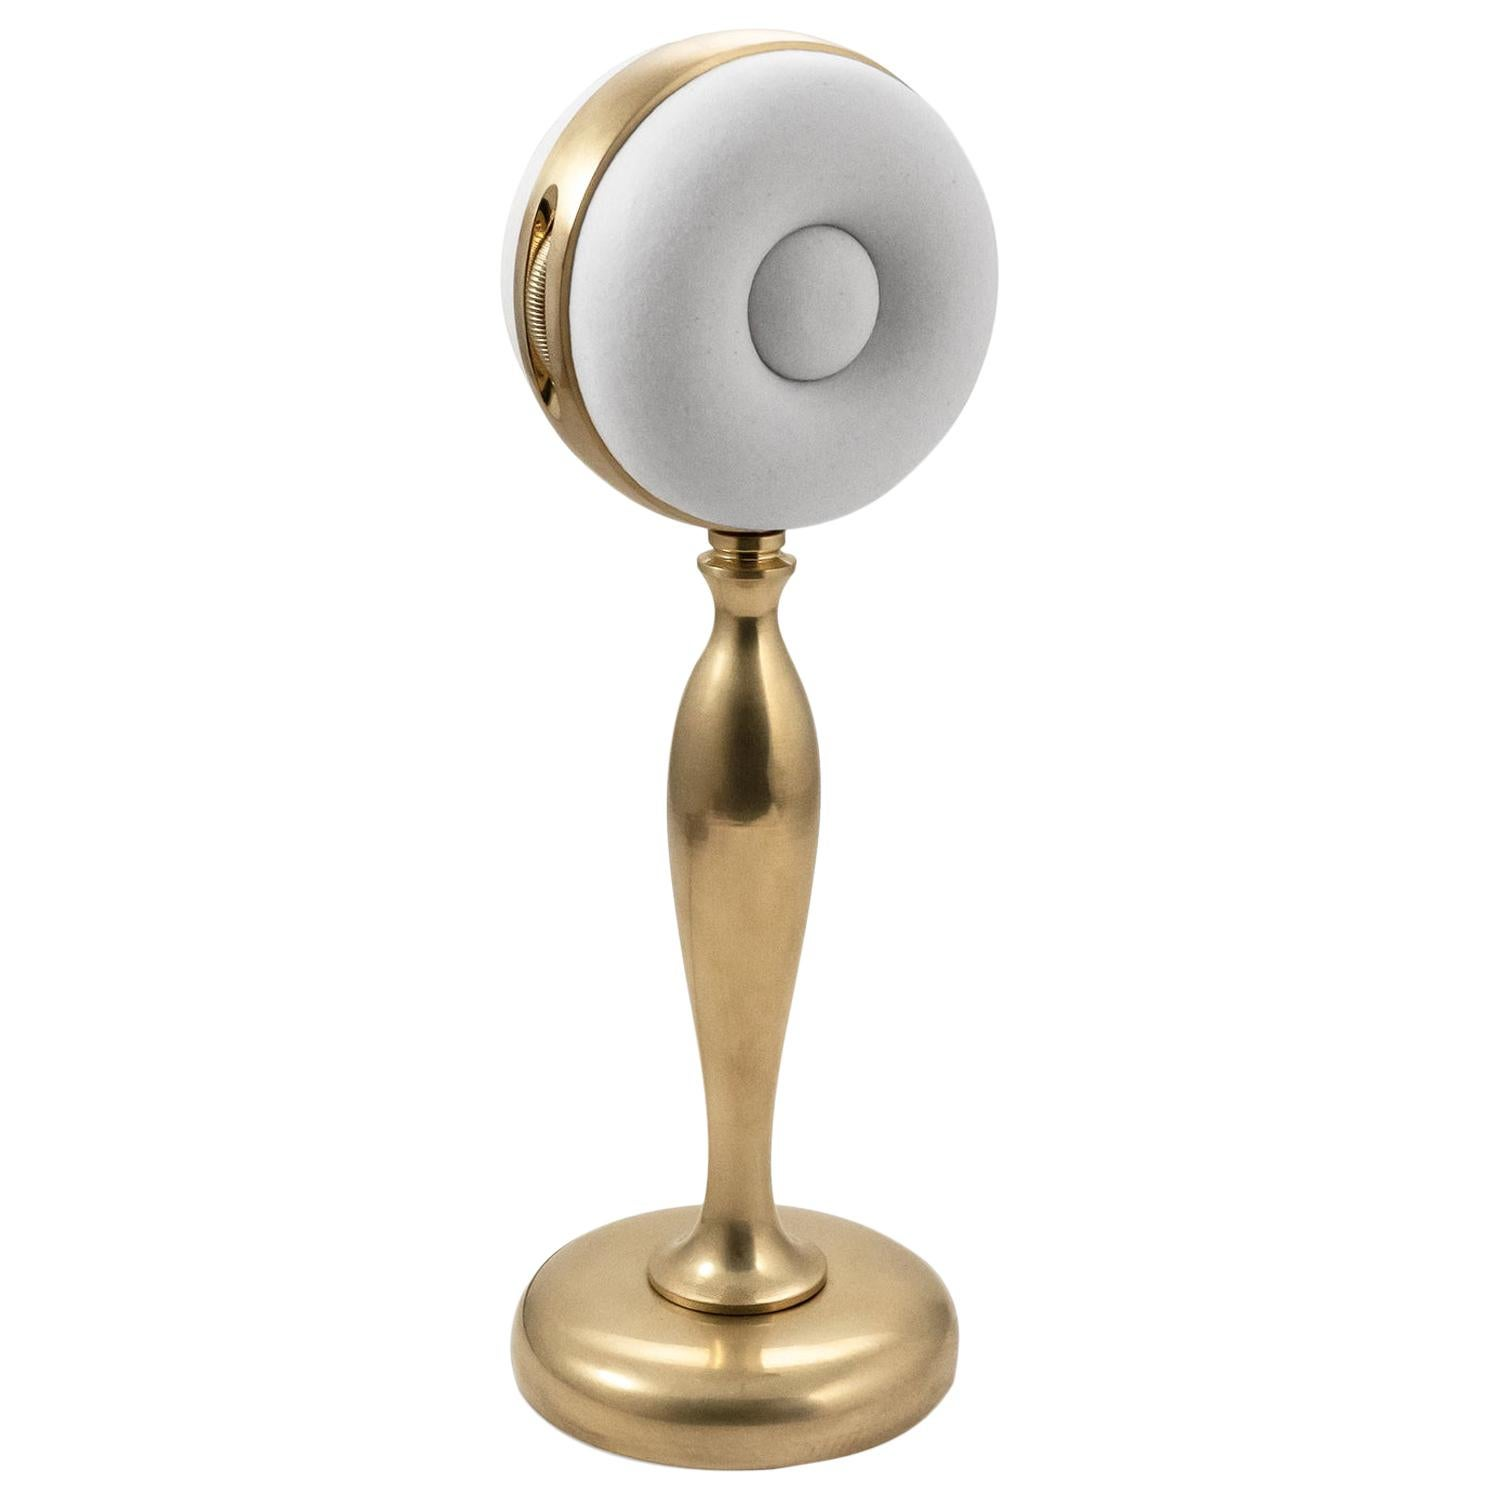 Nº156 Petite Salesman's Sample Table Lamp by Avoirdupois - Brass and Porcelain